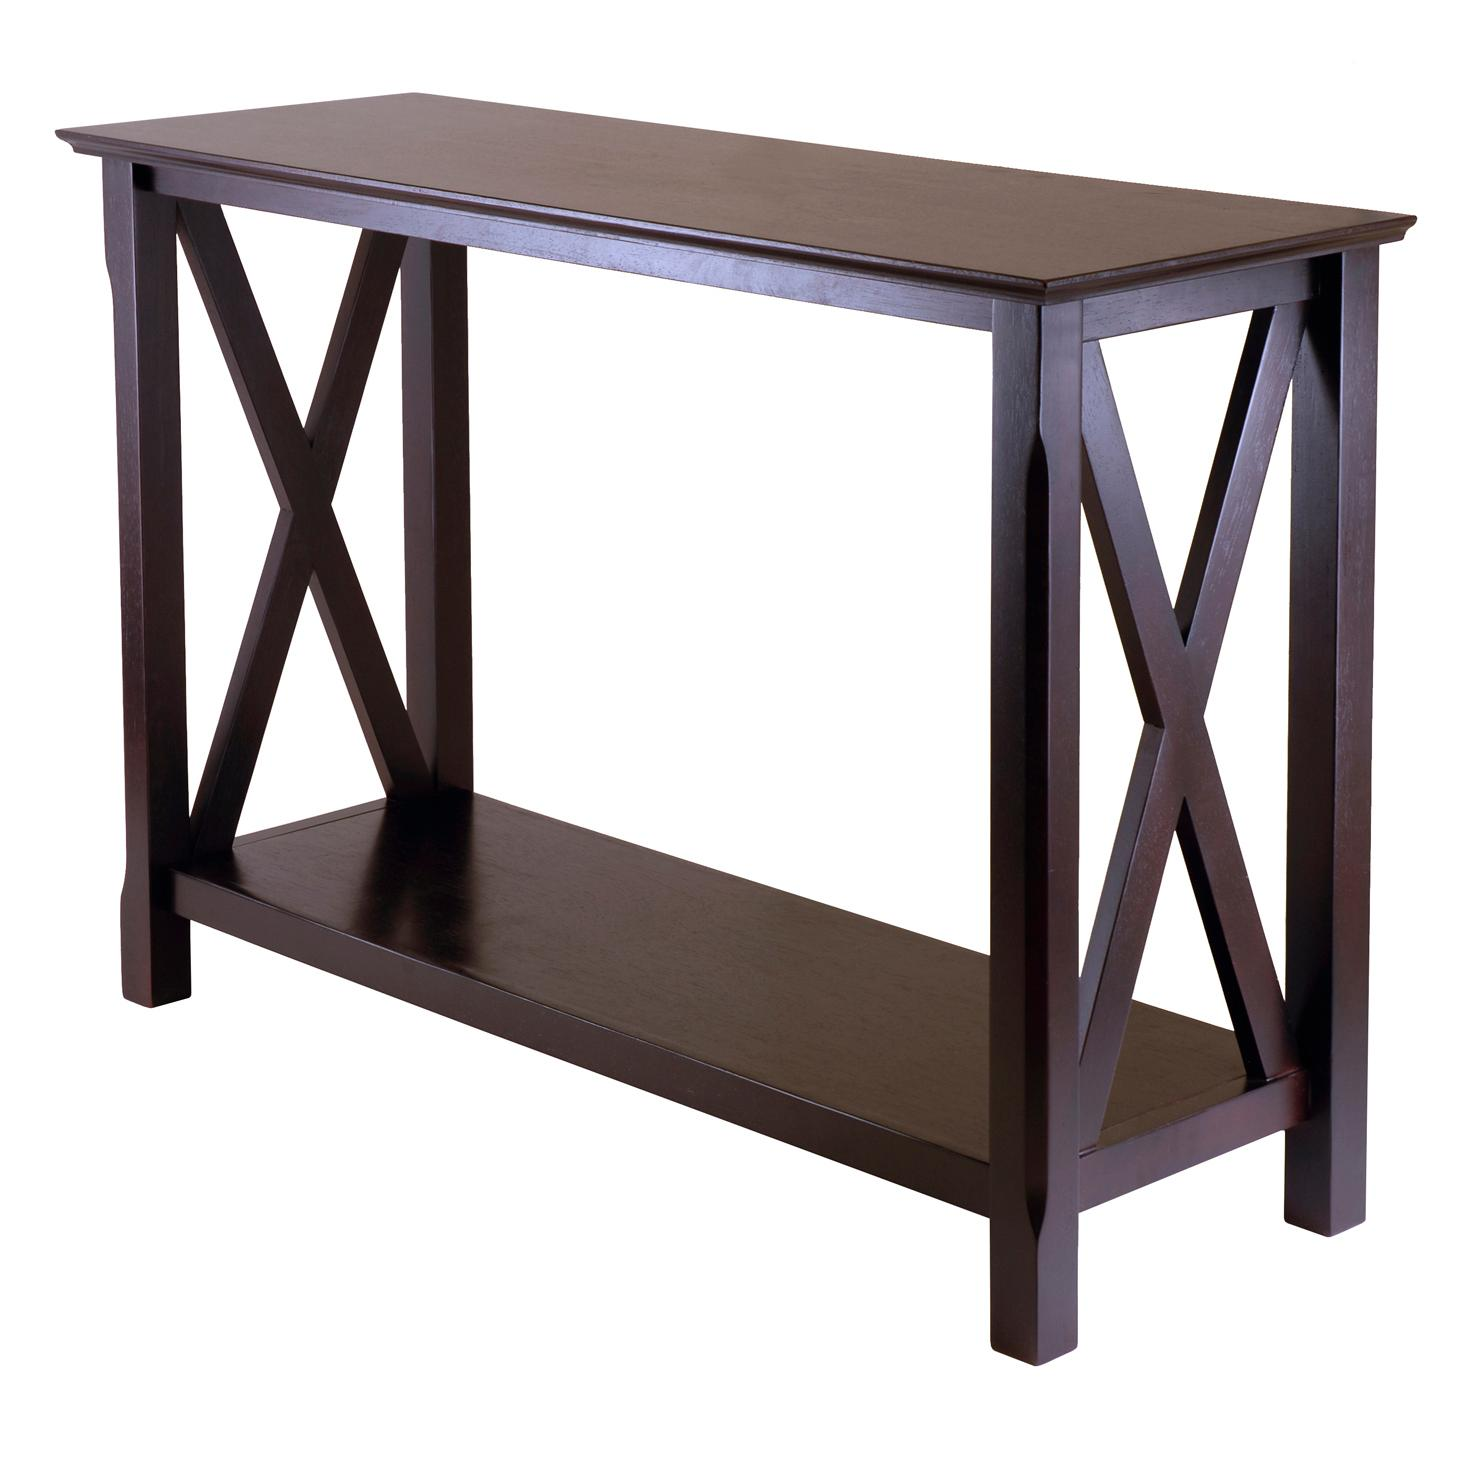 winsome wood xola console table kitchen dining. Black Bedroom Furniture Sets. Home Design Ideas